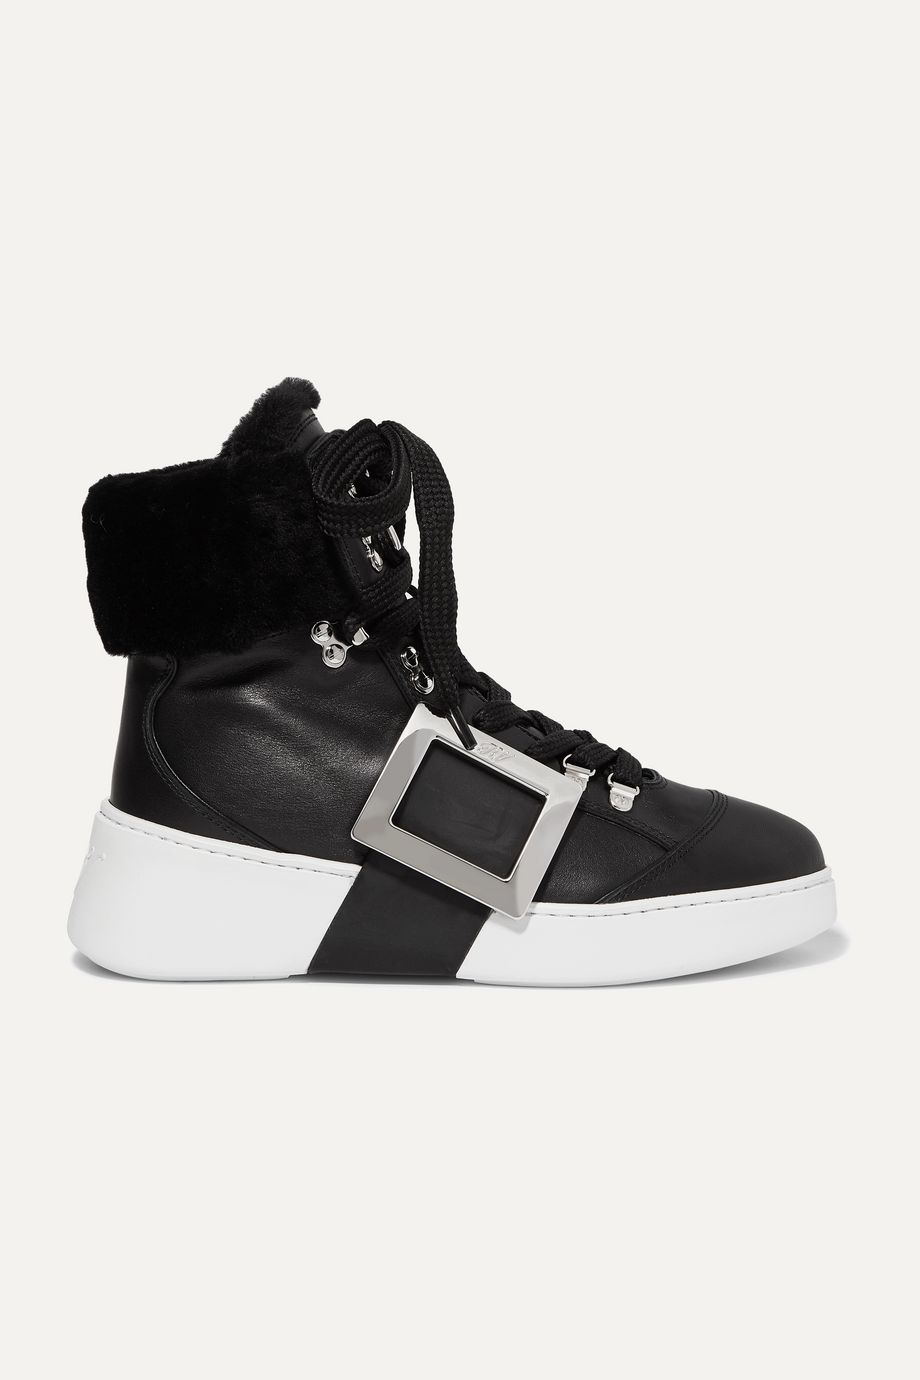 Roger Vivier Skate embellished shearling-trimmed leather sneakers